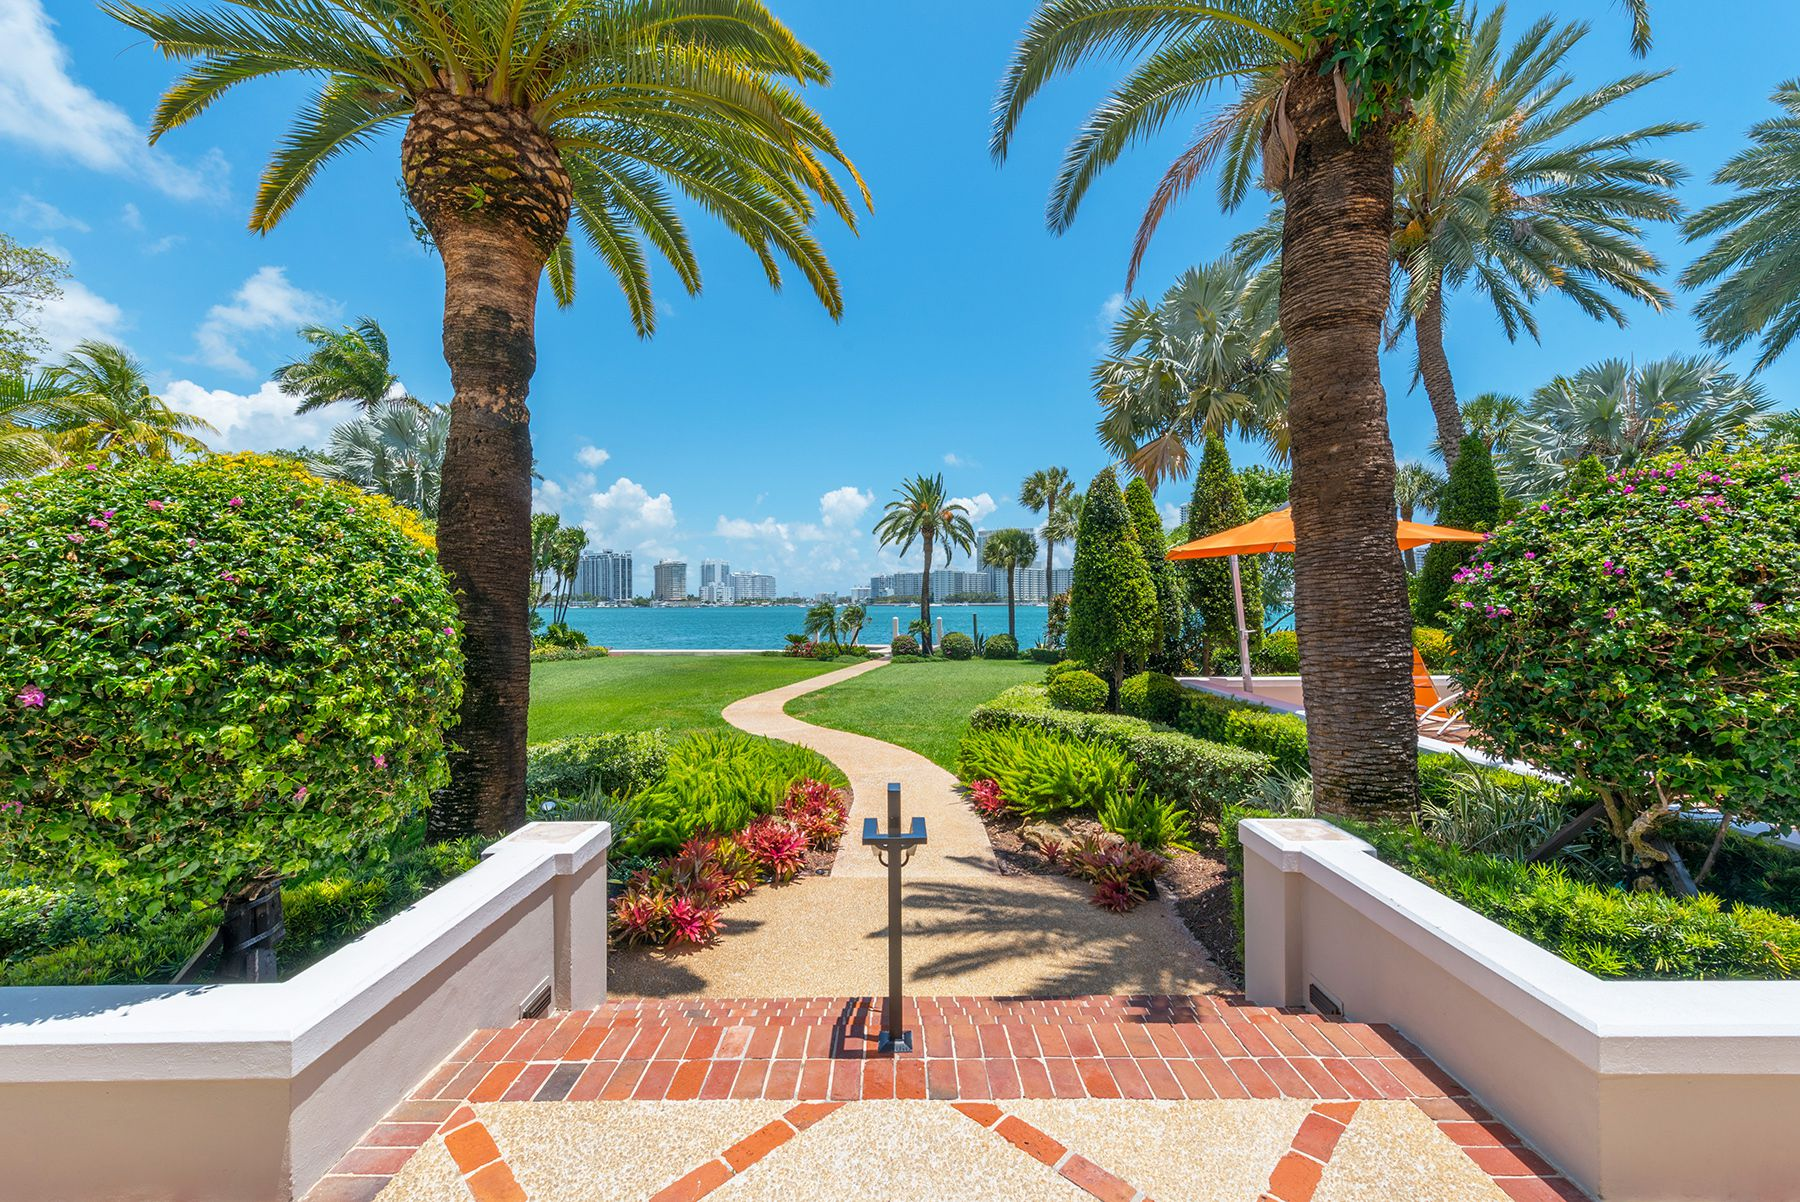 Featured Listing: The Late Leonard Miller's 23 Star Island Lists for $49 Million